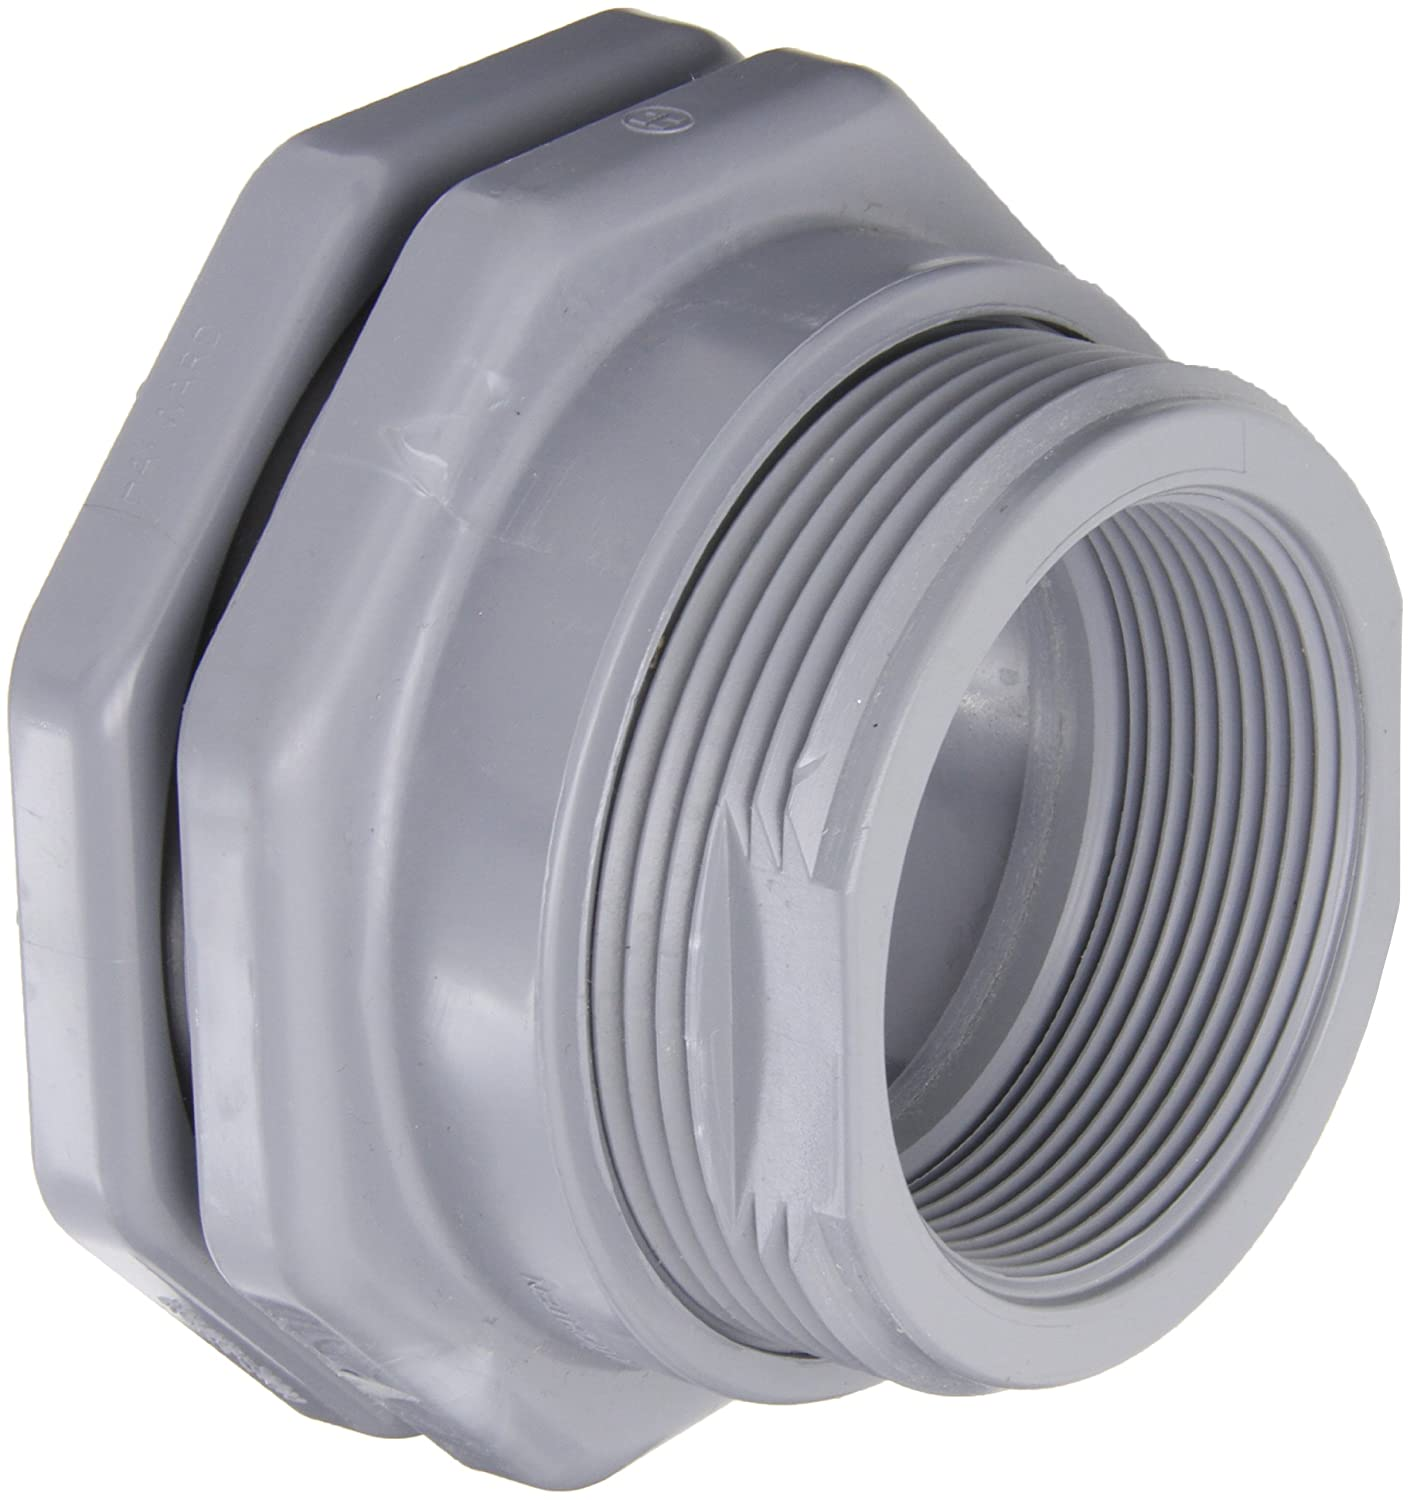 Threaded x Threaded End Hayward BFAS4010TES Series BFAS Short Pattern Bulkhead Fitting GFPP with EPDM Seals 1 Size